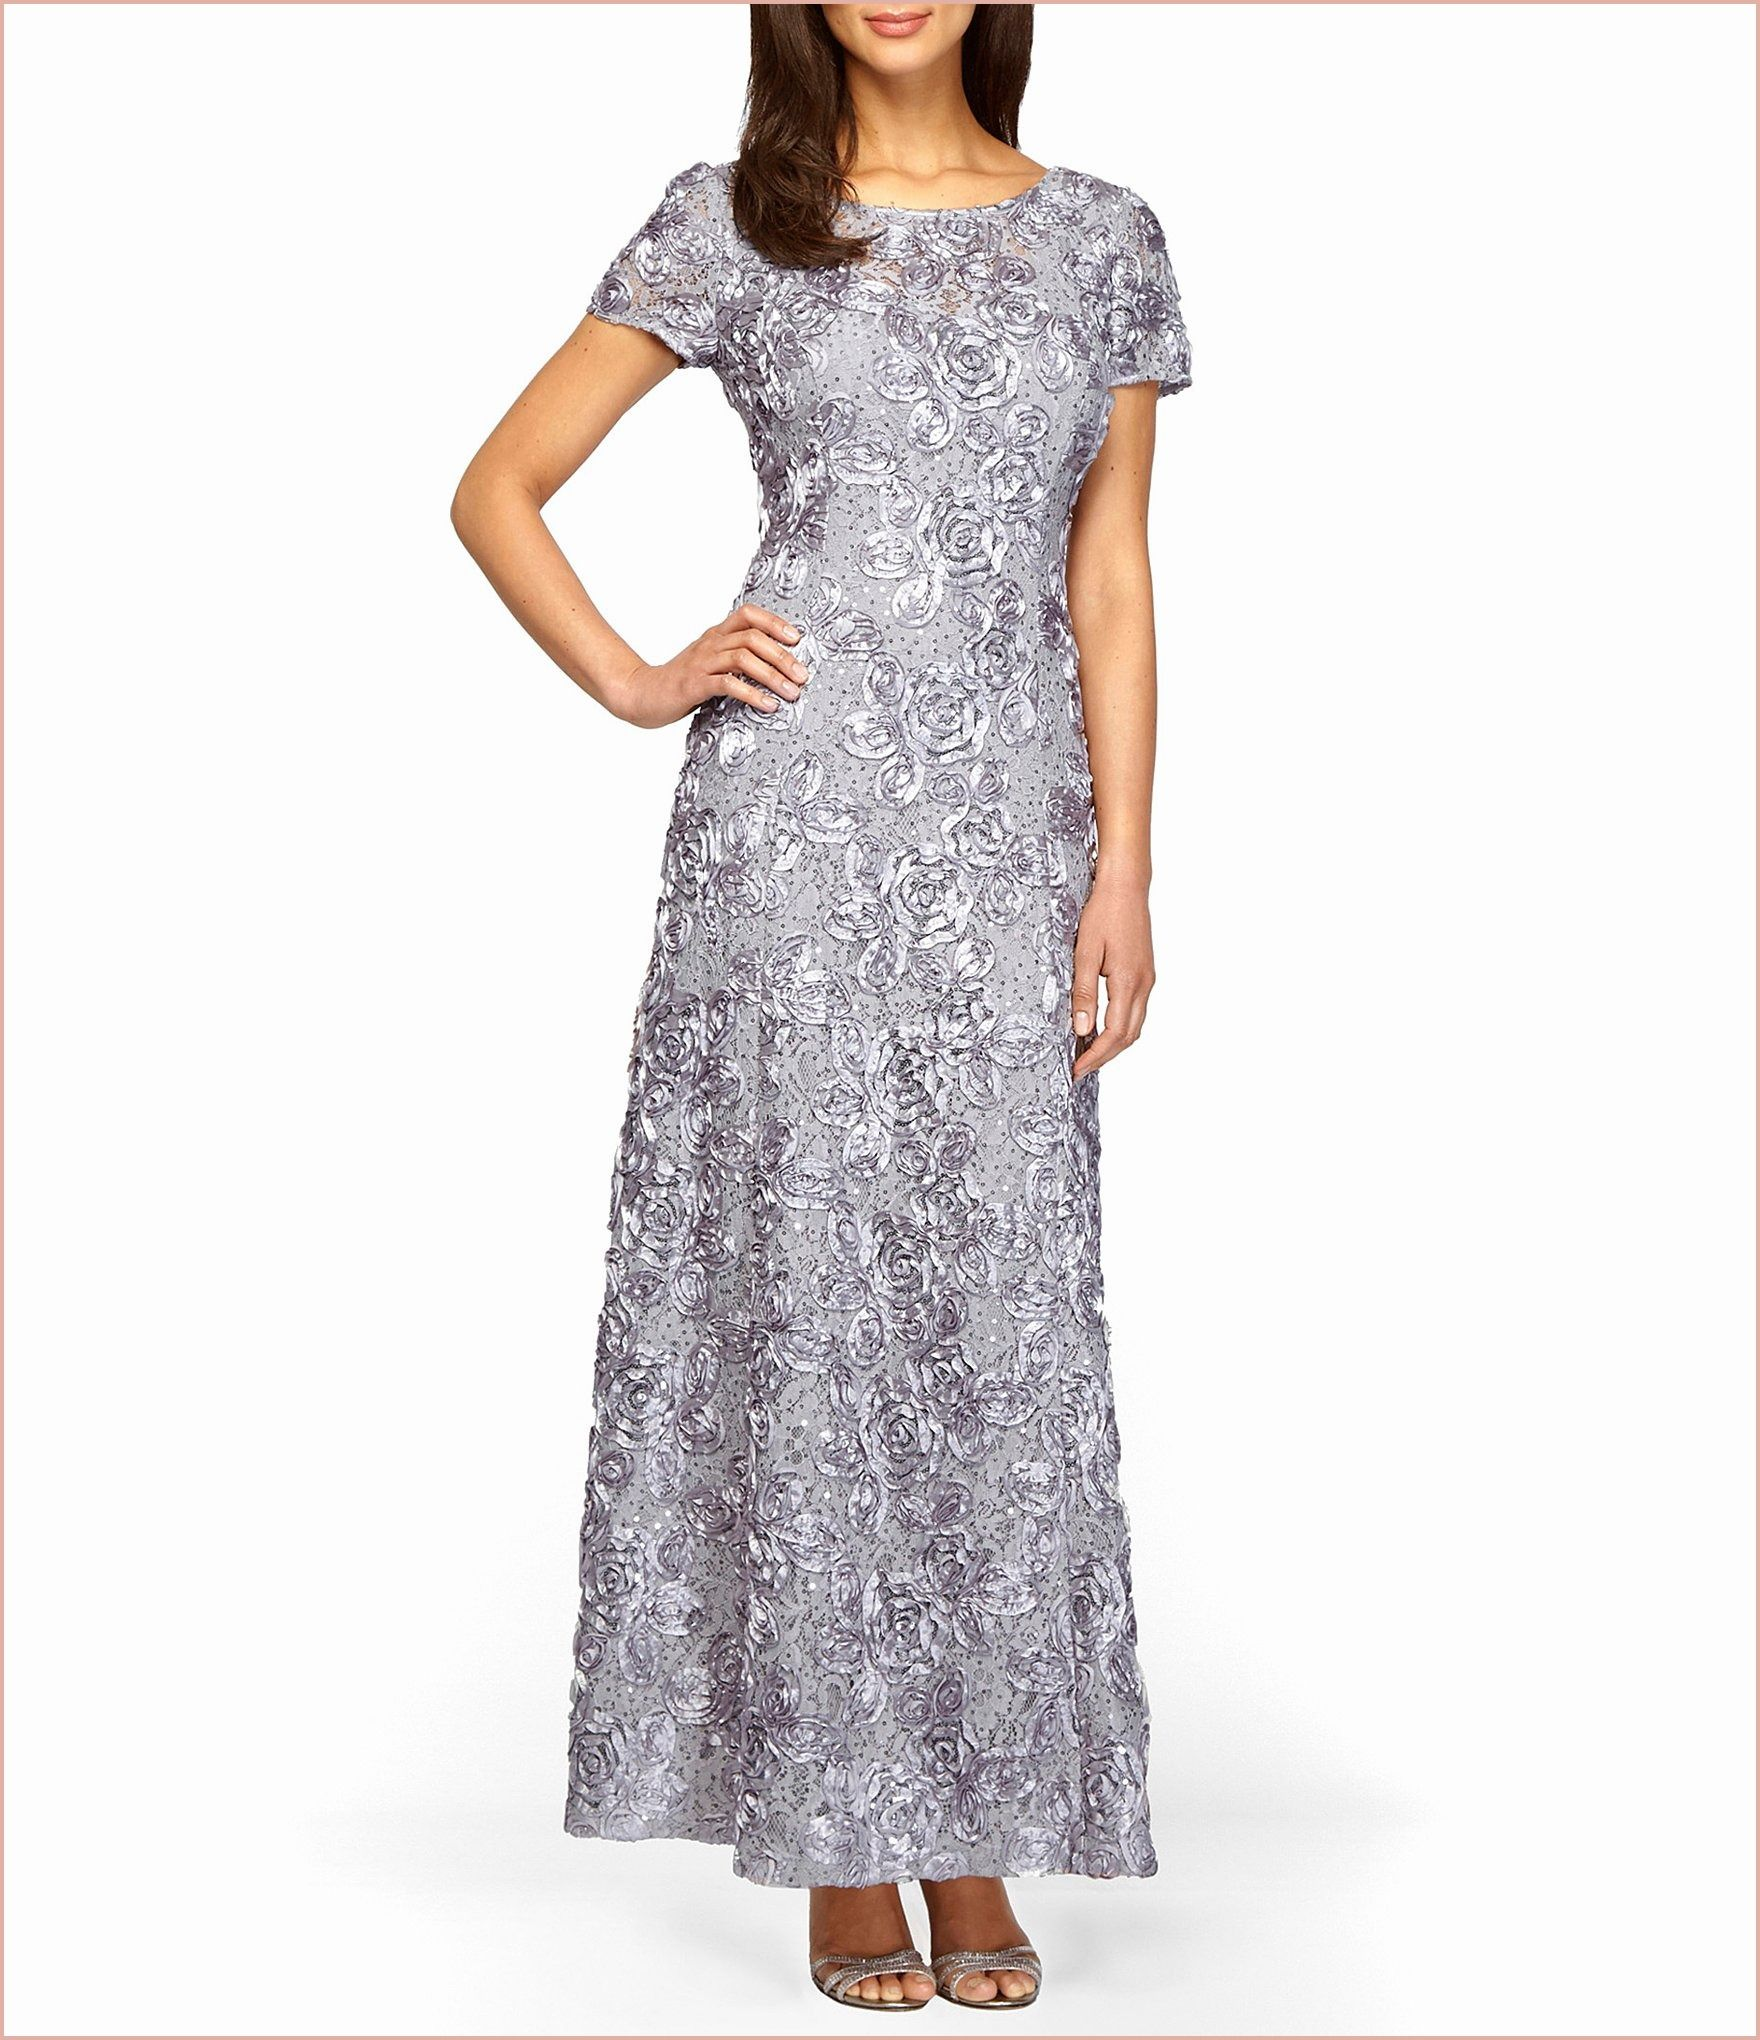 12 Overwhelming Dillards Wedding Guest Dresses Greeting My Visitor In This Time Period I Am Going To Demonstrate Concerning Dillard Formal Dresses For Women Rose Gown A Line Gown